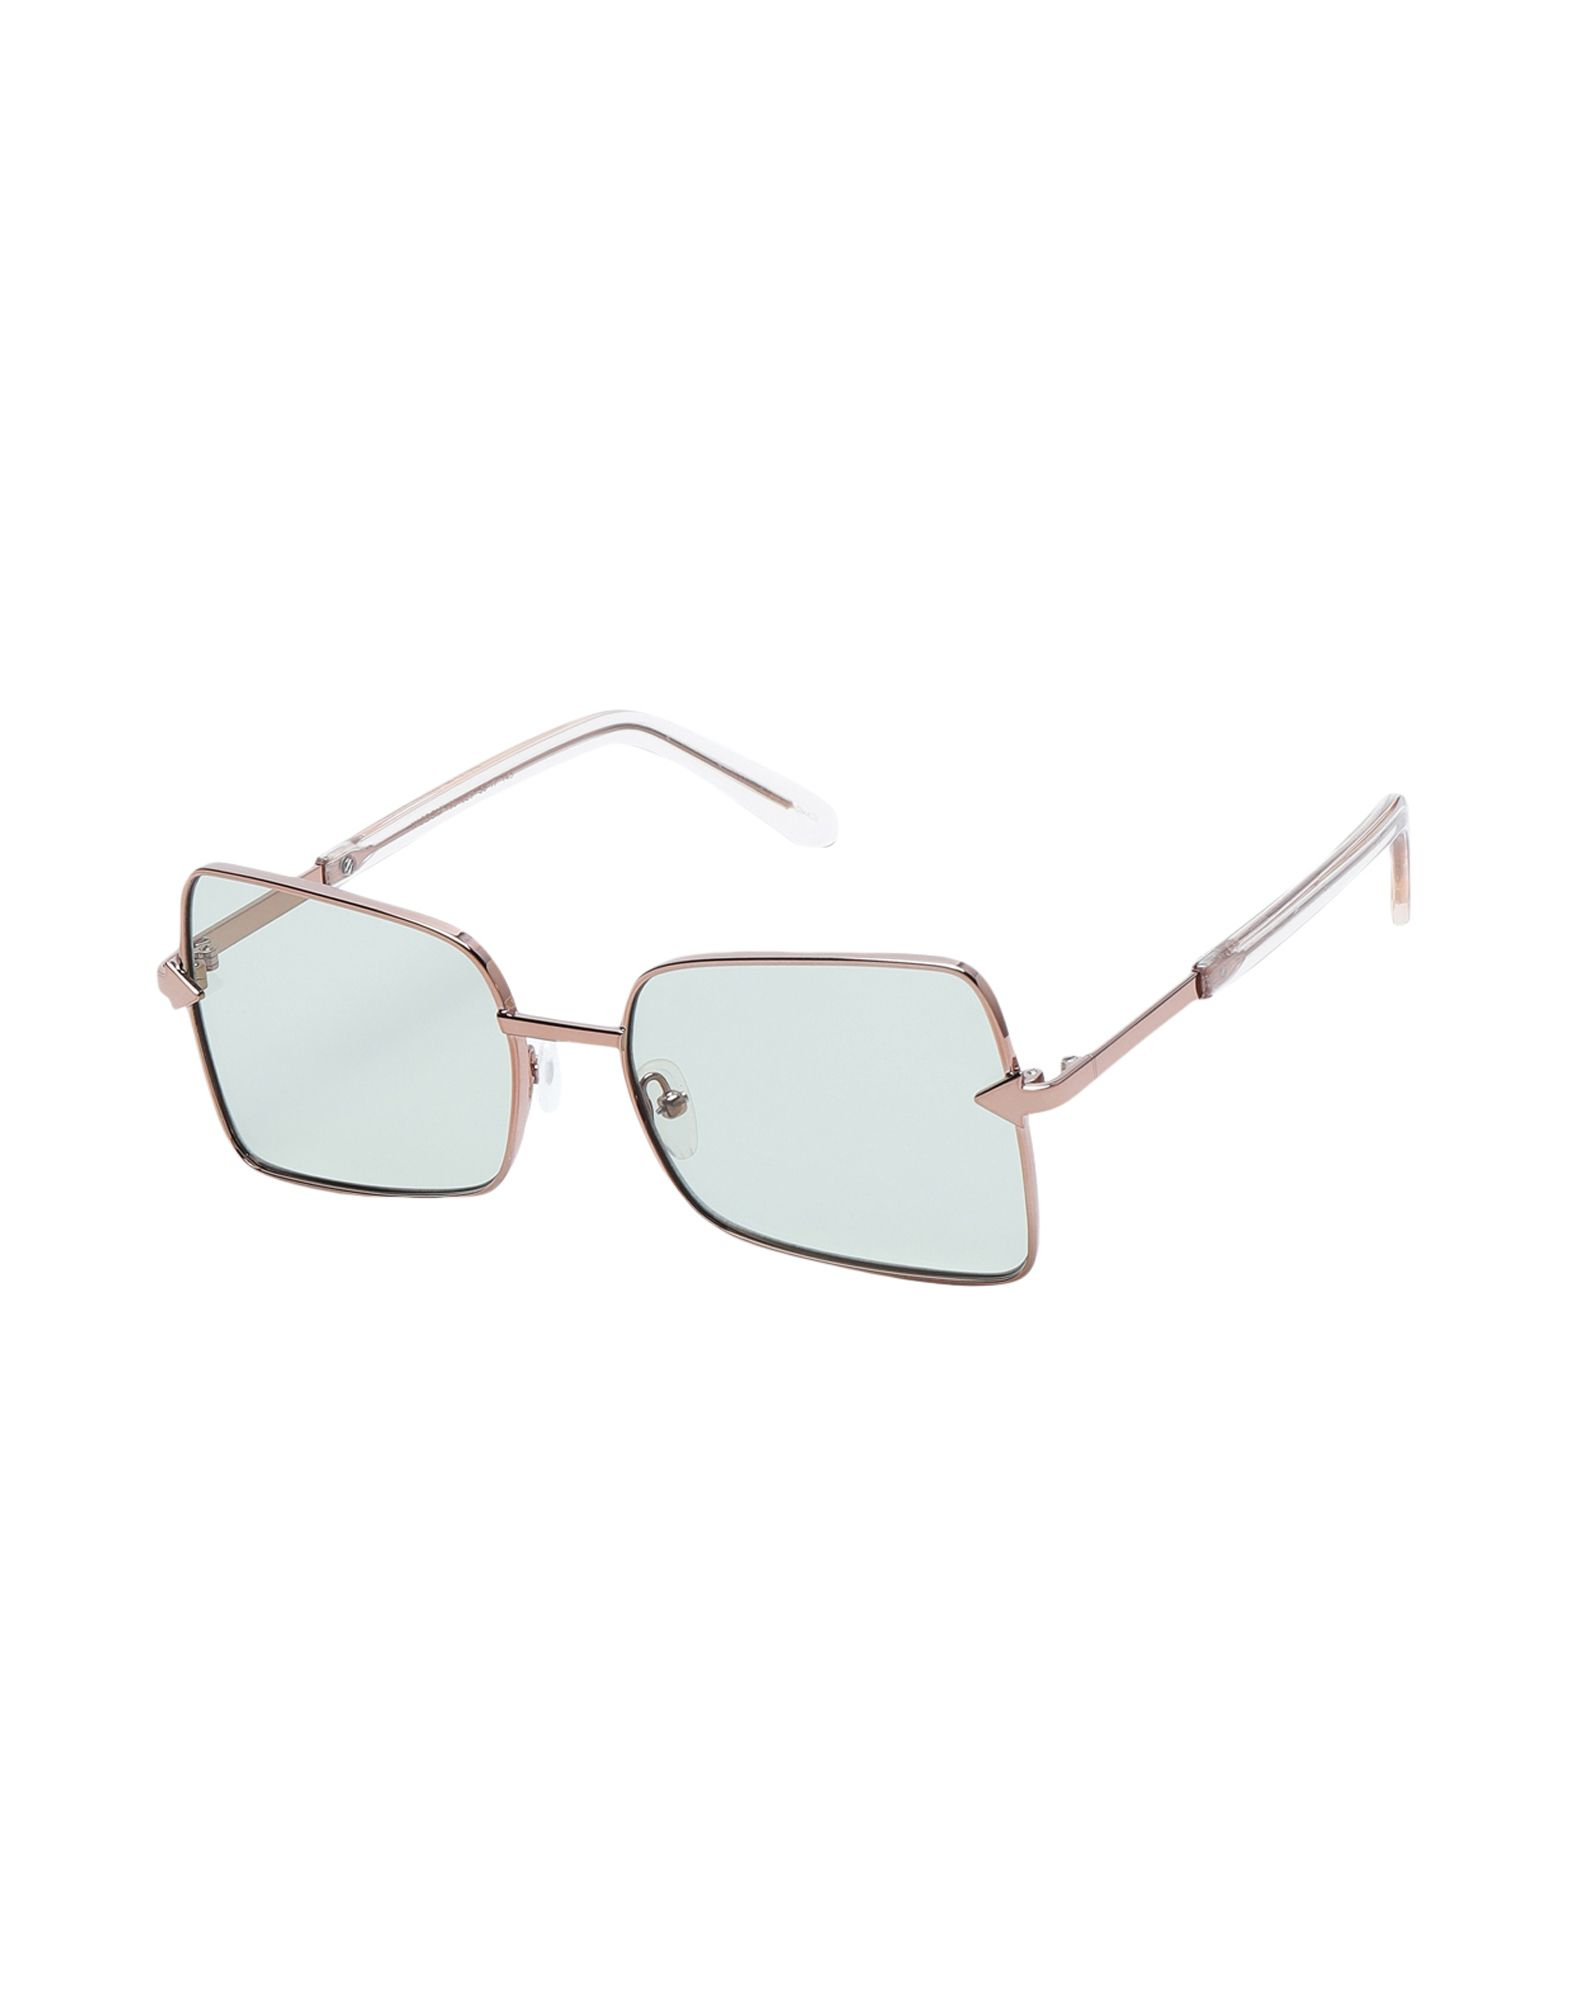 KAREN WALKER Sunglasses - Item 46635490